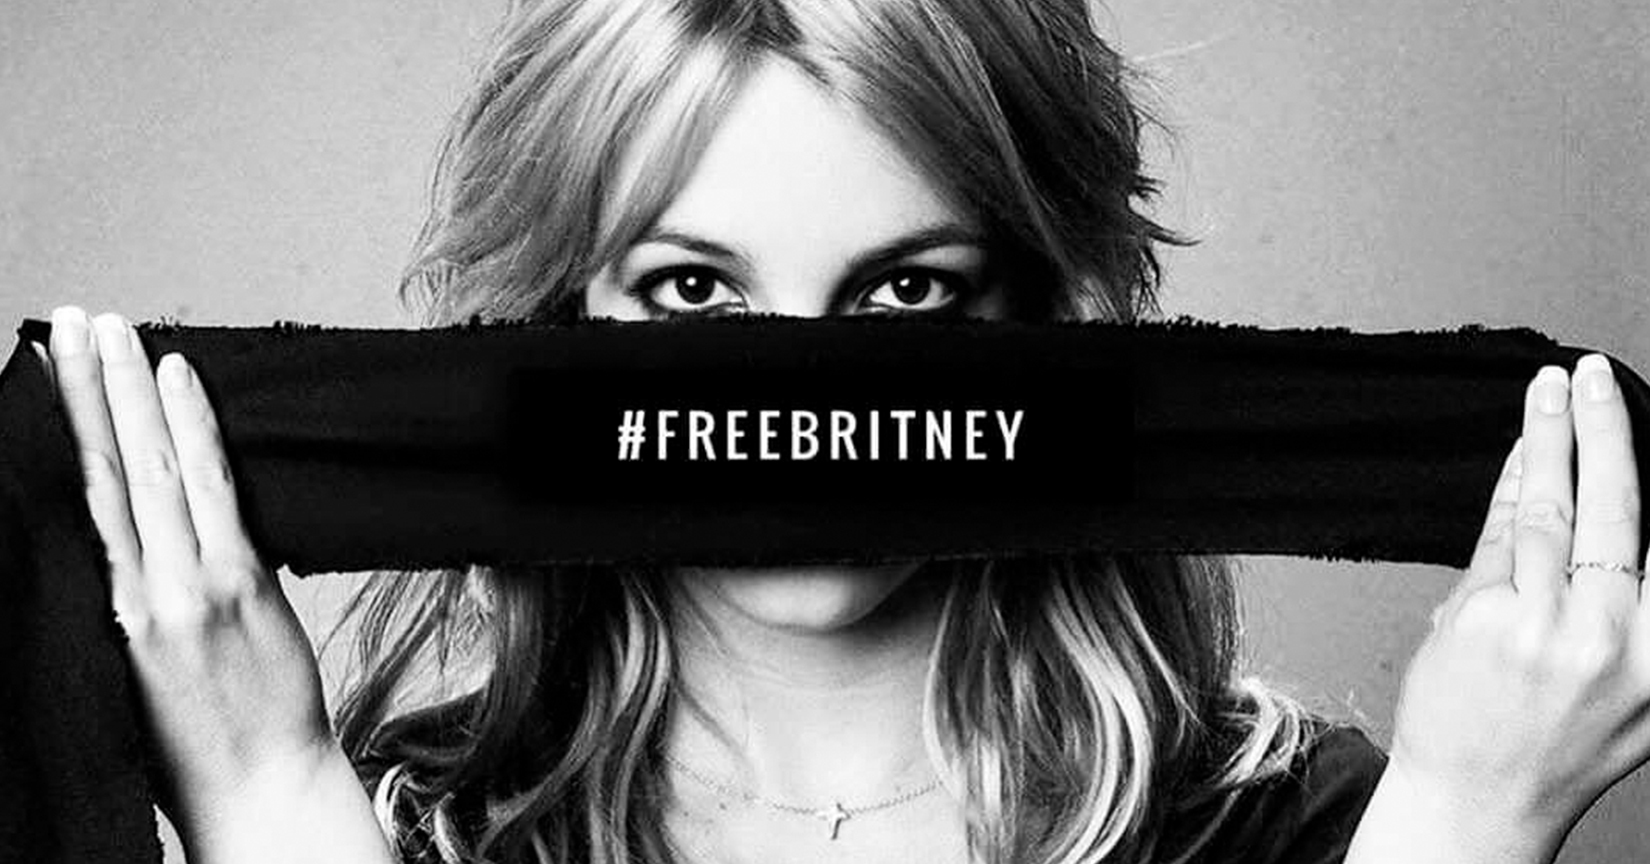 movimento freebritney